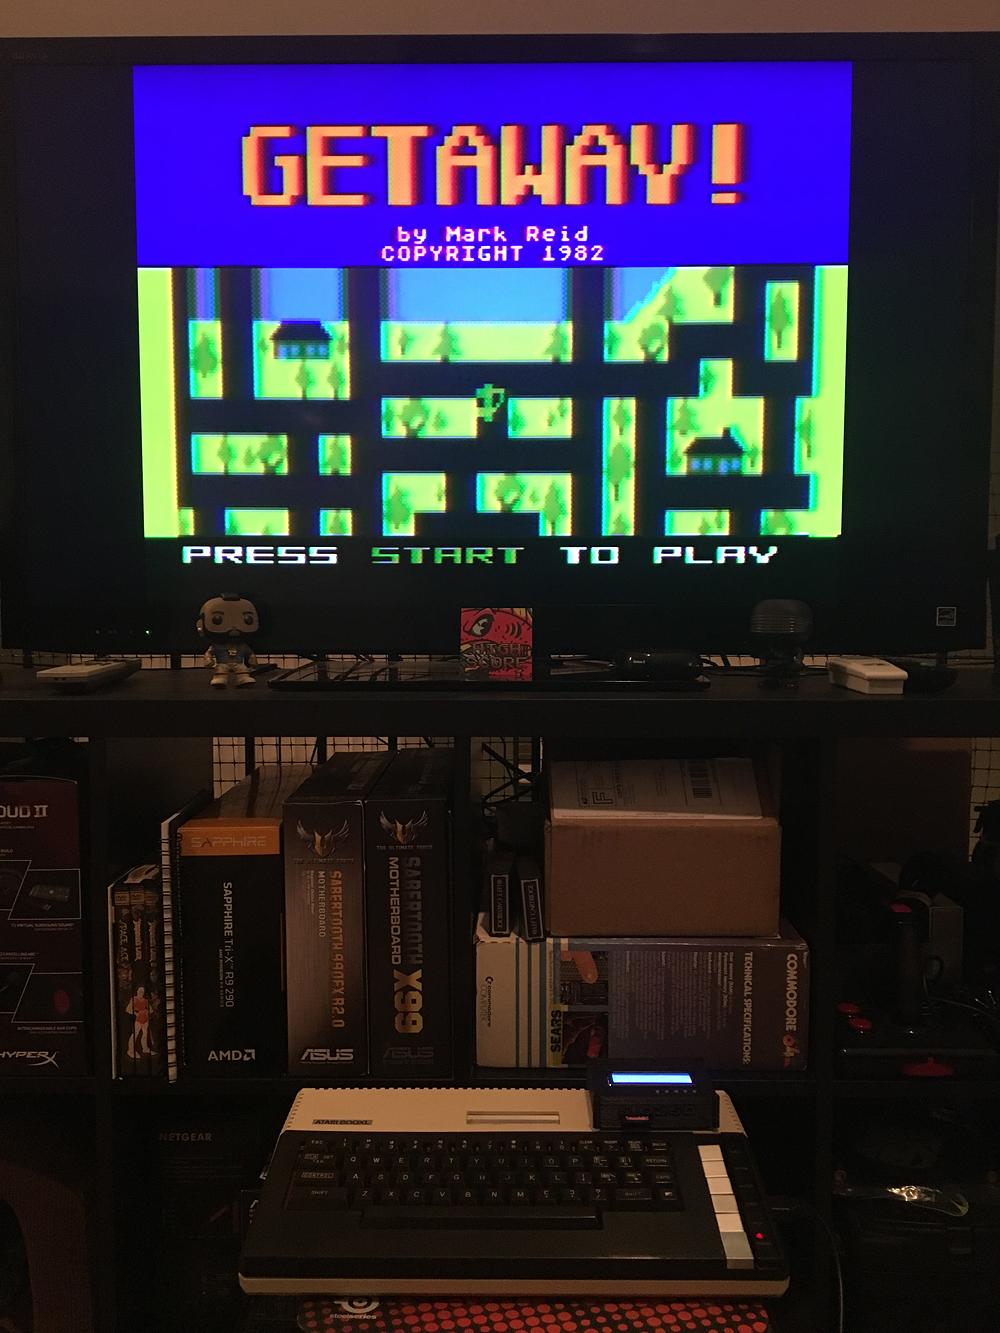 ILLSeaBass: Getaway! (Atari 400/800/XL/XE) 5,600 points on 2017-05-06 22:50:32